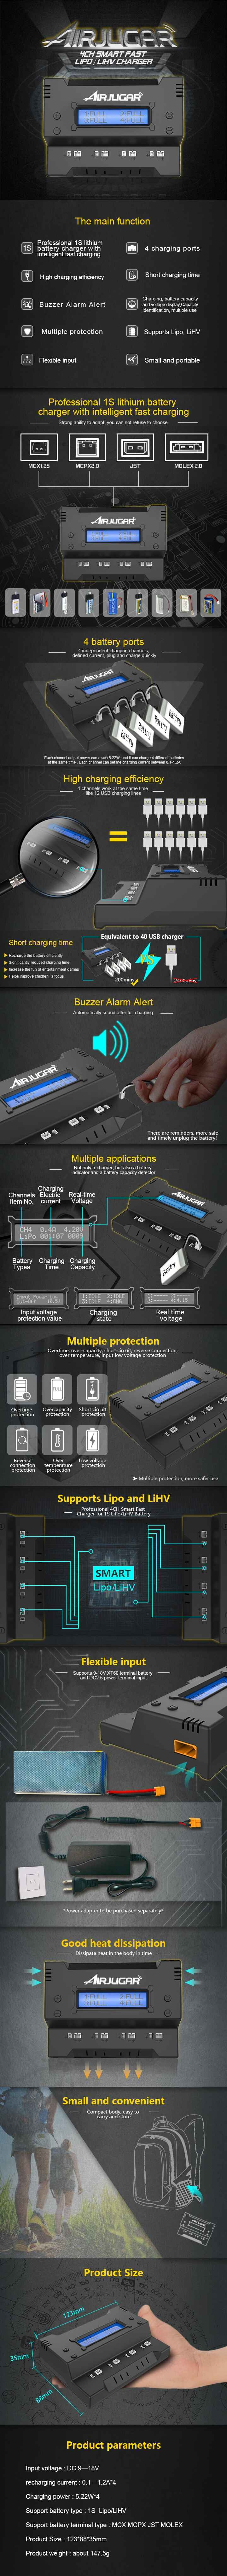 4CH 1S Intelligent Smart Fast Charging Lipo LiHv Battery Charger XT60/JST/MCX/MCPX/MOLEX Plug